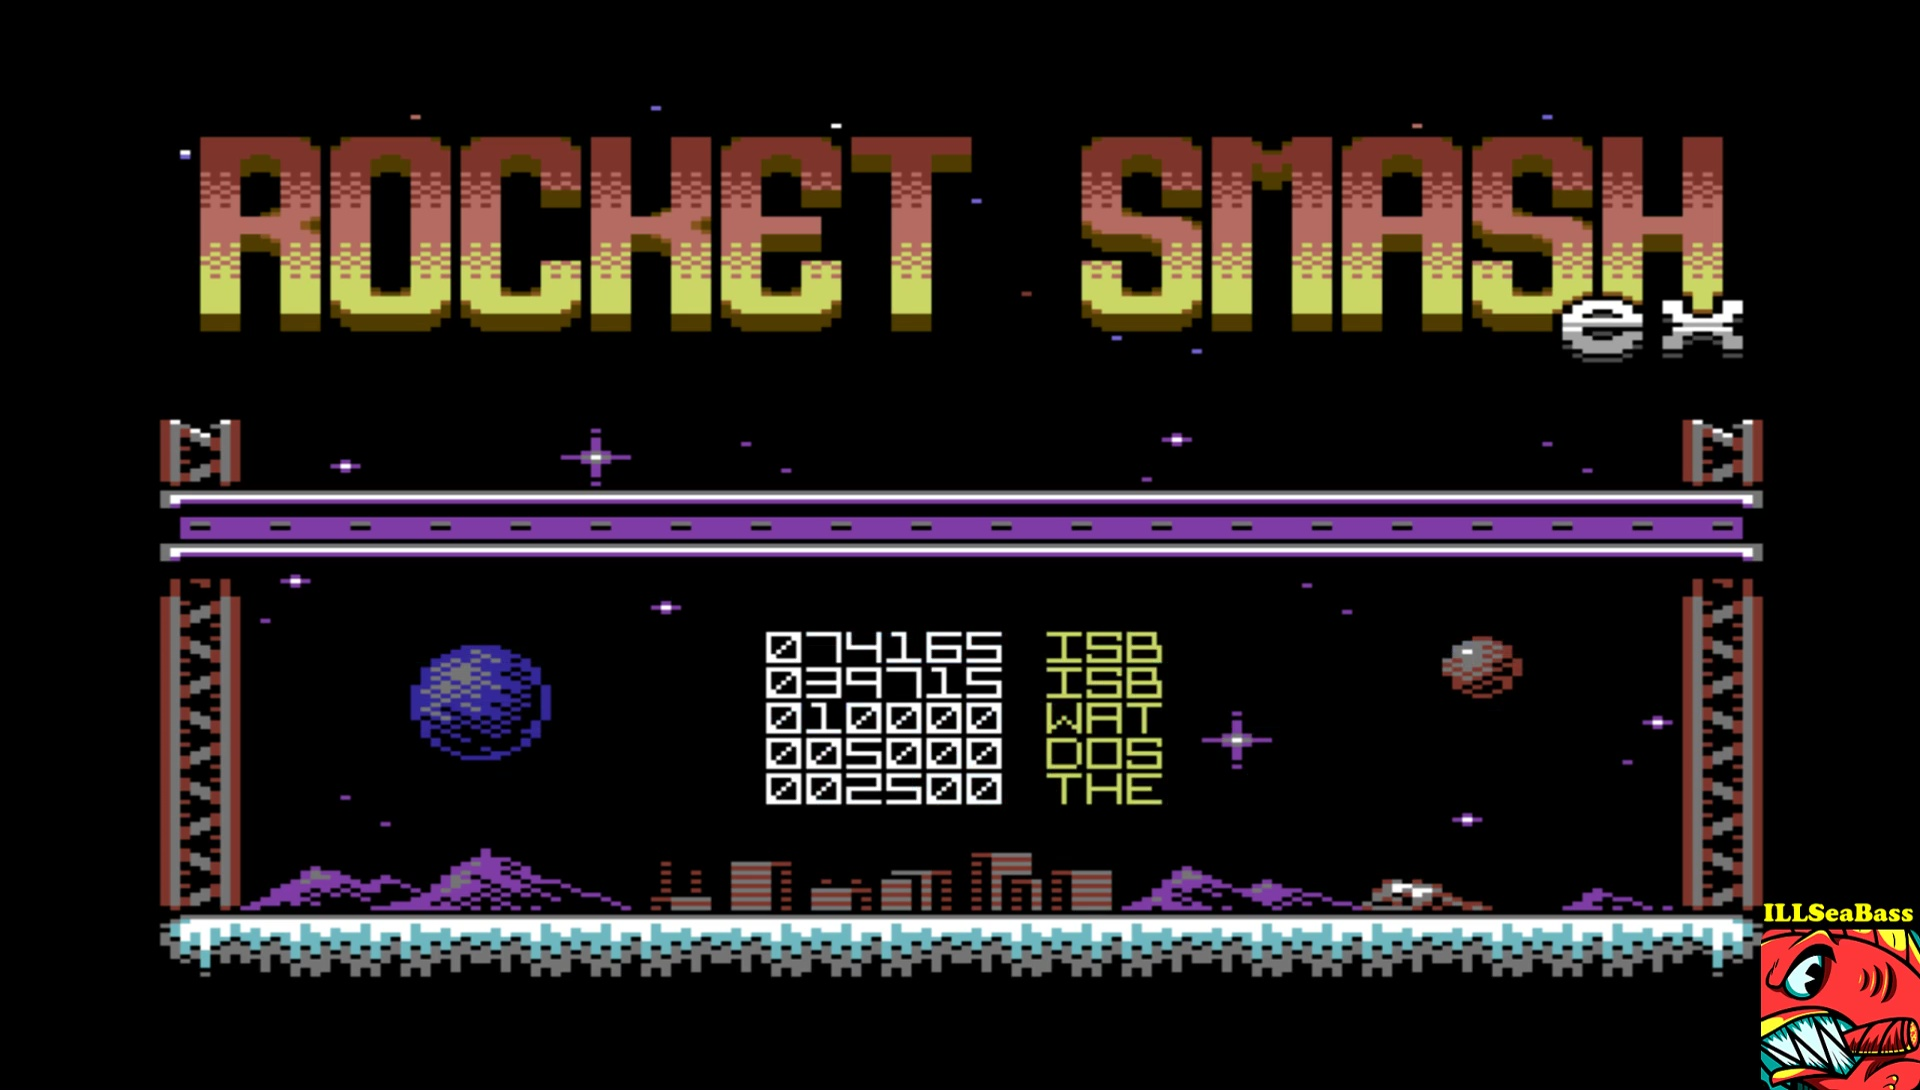 ILLSeaBass: Rocket Smash EX [Loop: Normal] (Commodore 64 Emulated) 74,165 points on 2017-04-15 23:41:00